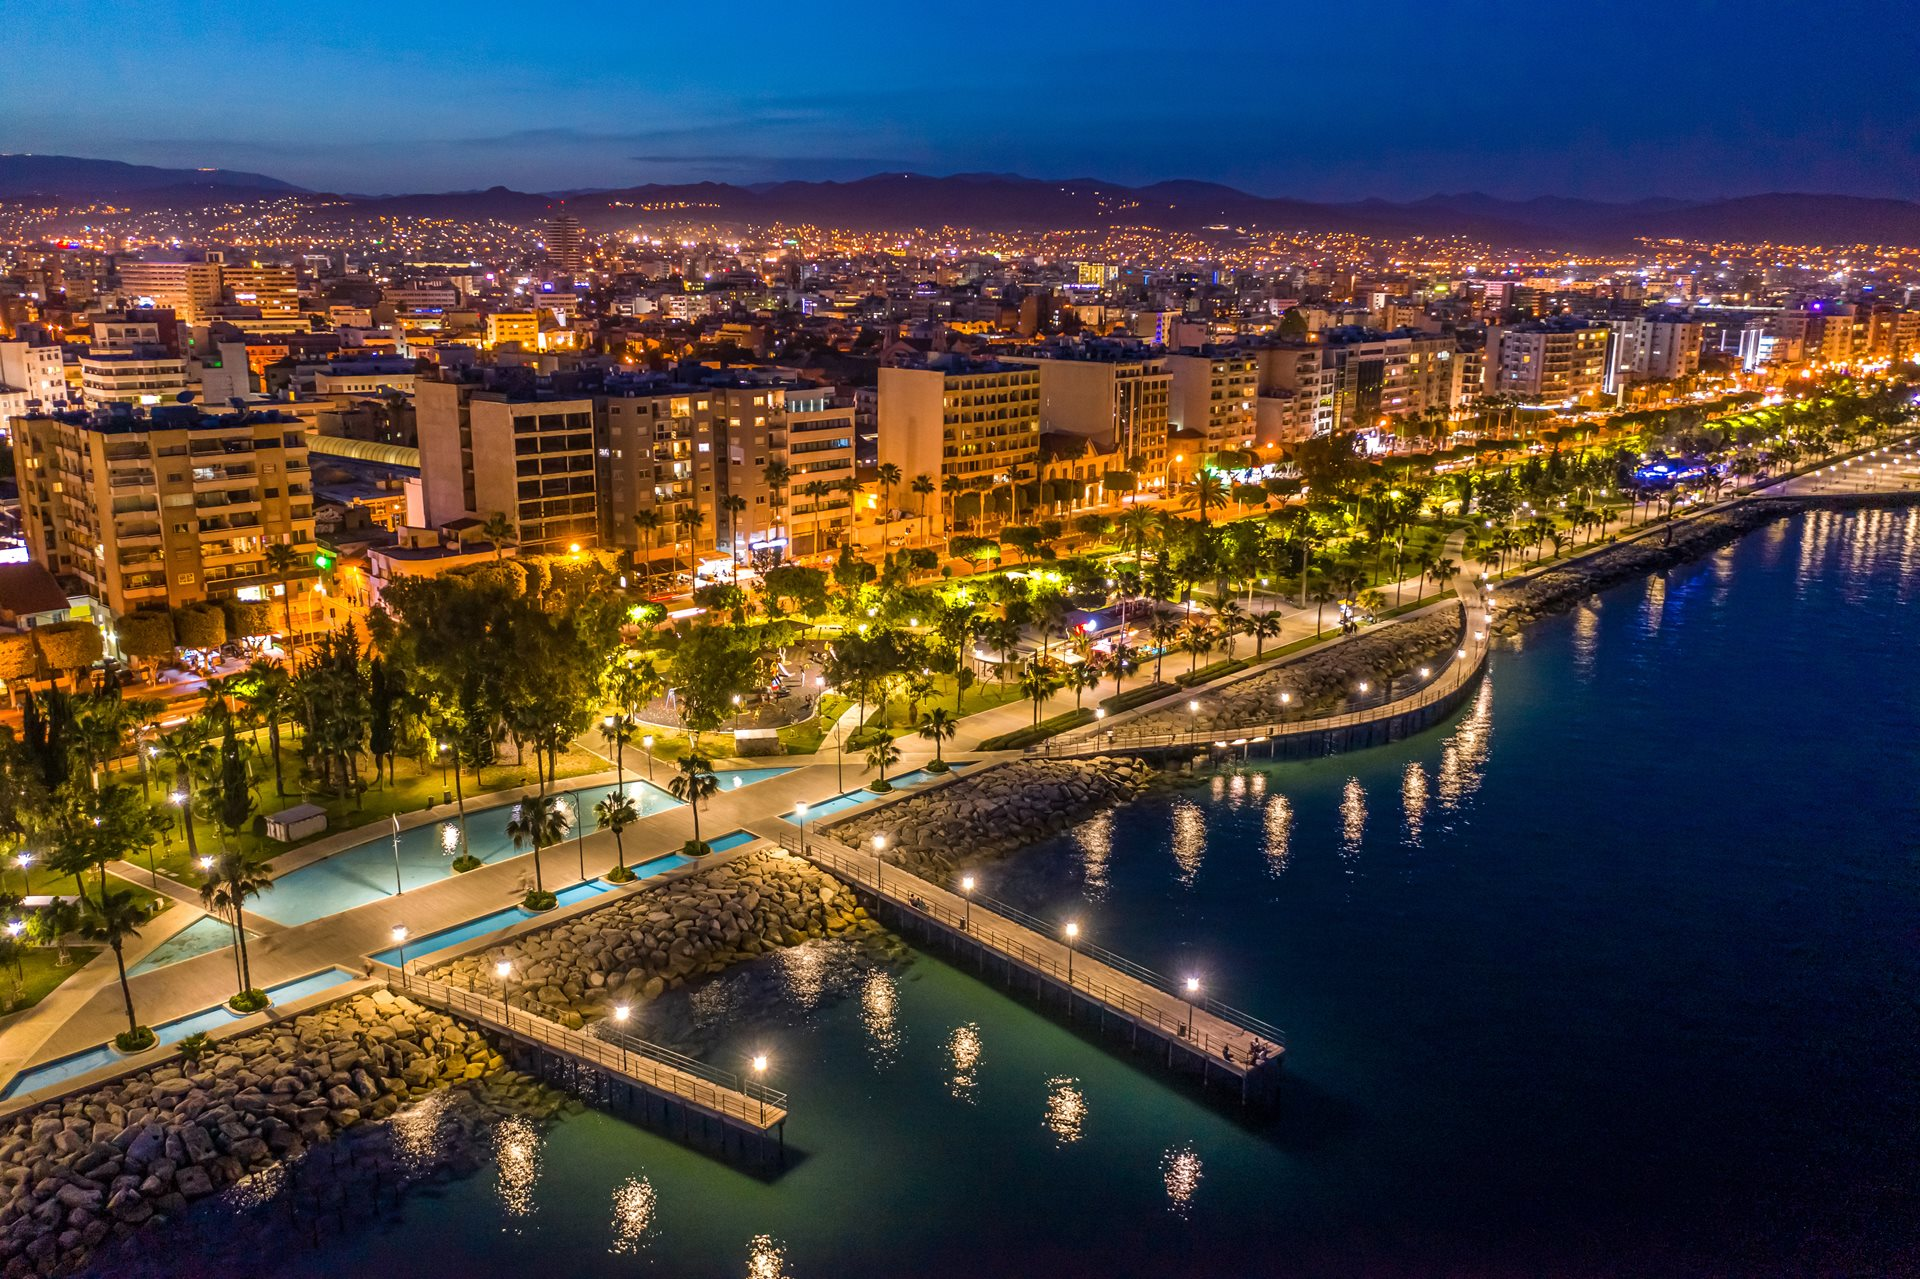 Top sights in Cyprus